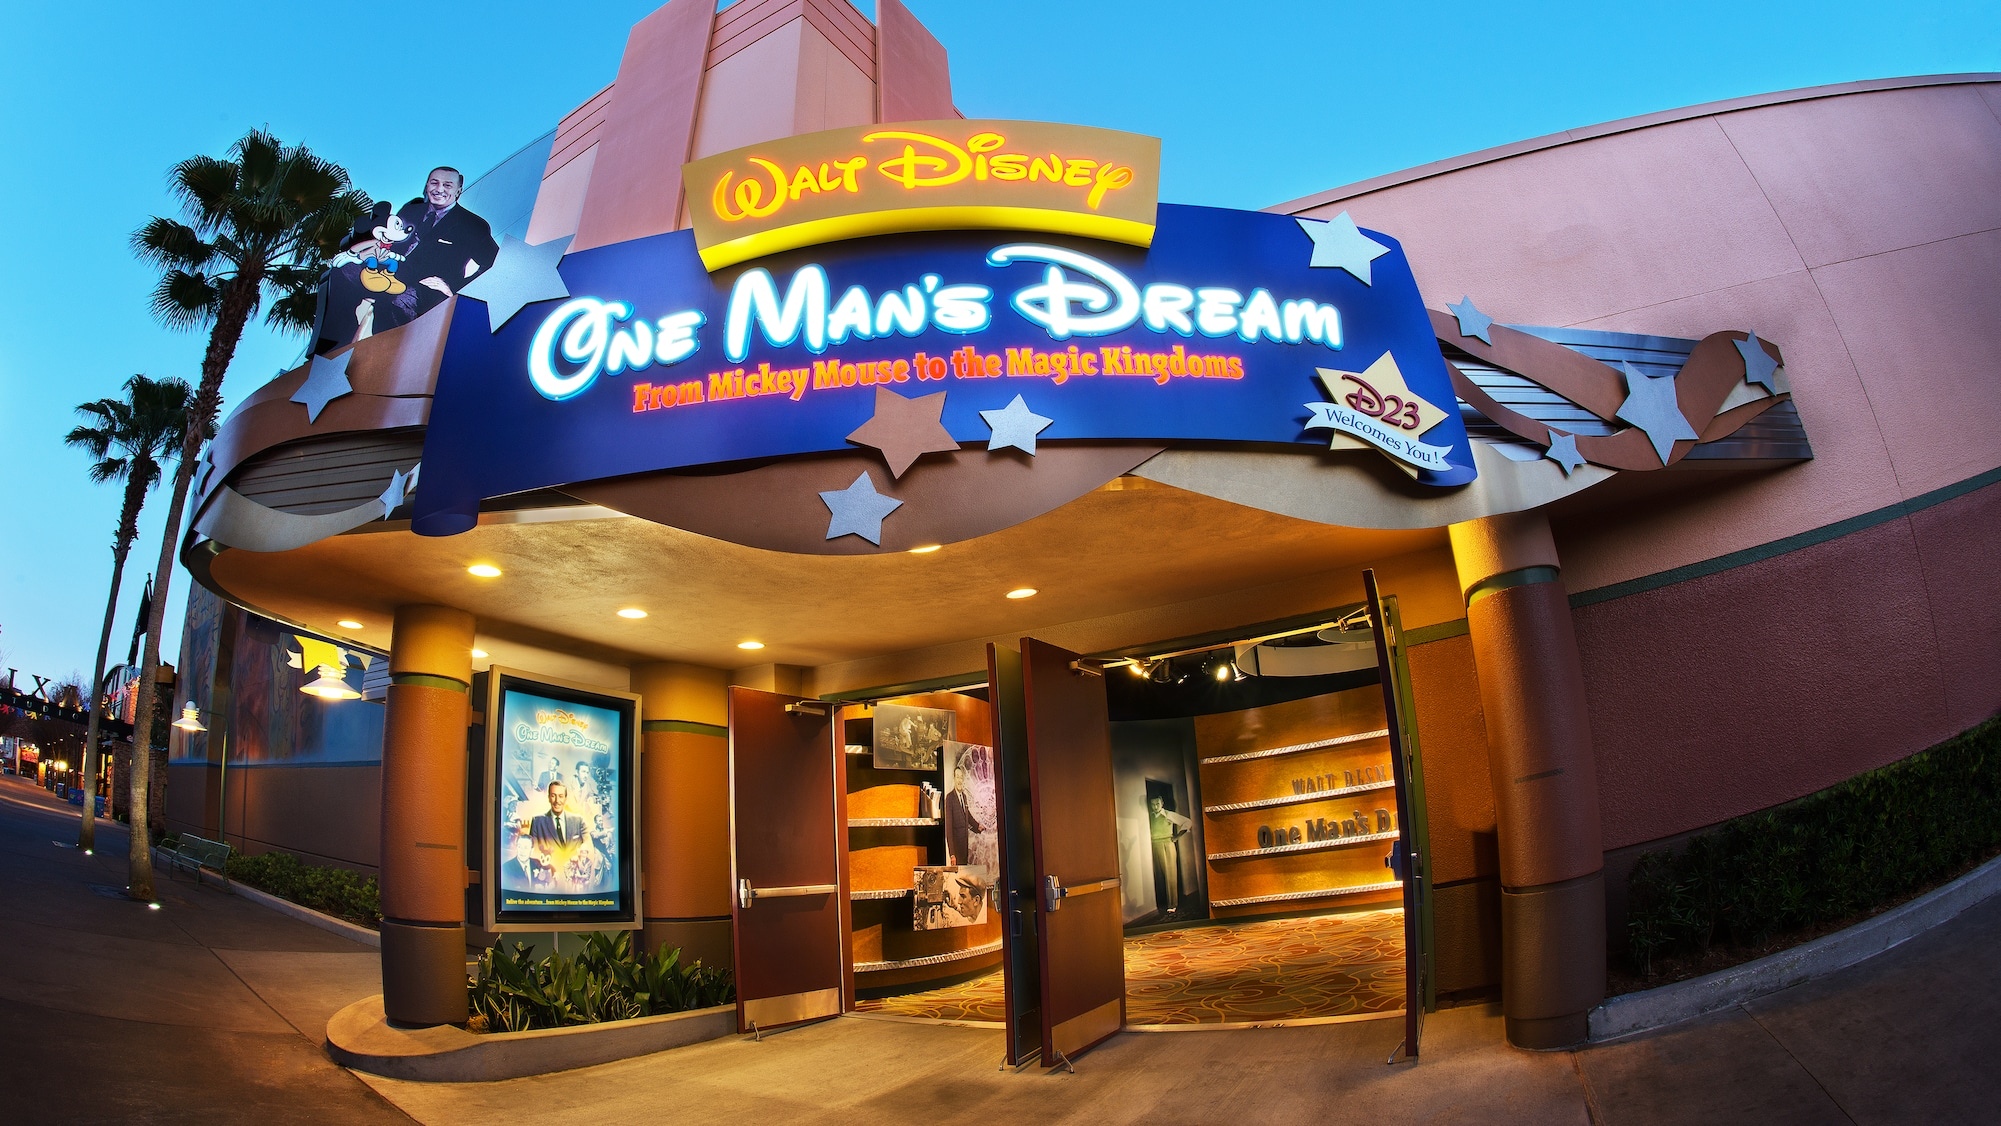 Disney Hollywood Studios ganha preview center de futuras atrações, no lugar da One's Man Dream